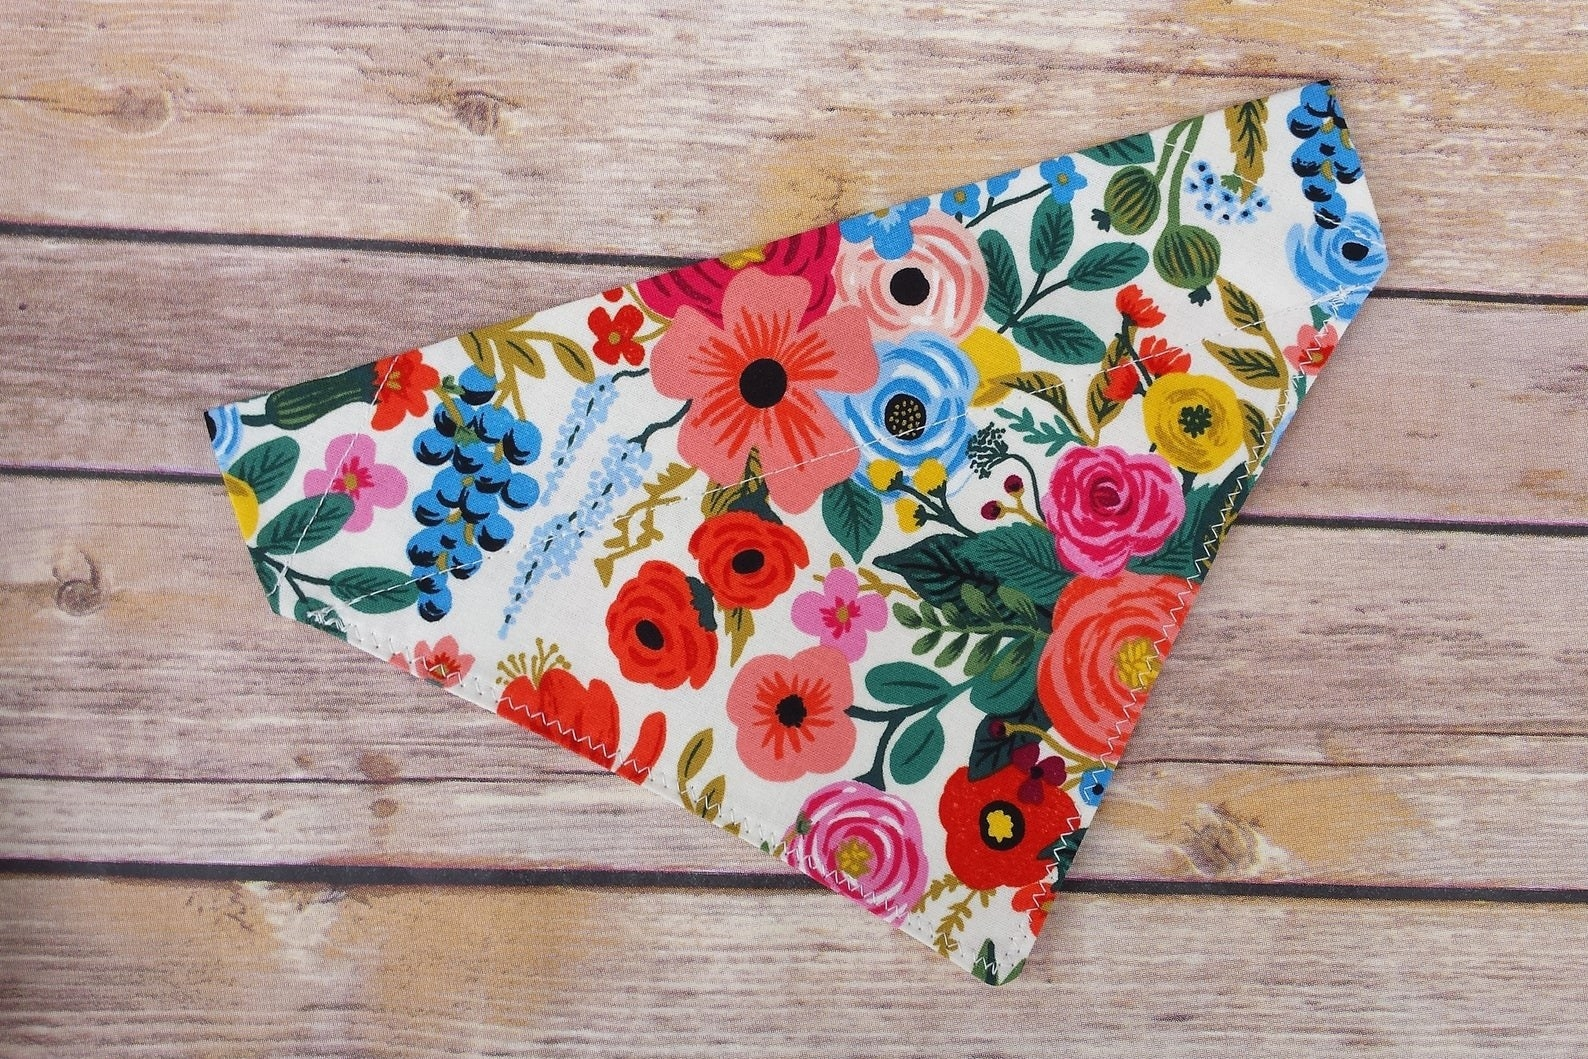 The colorful floral bandana